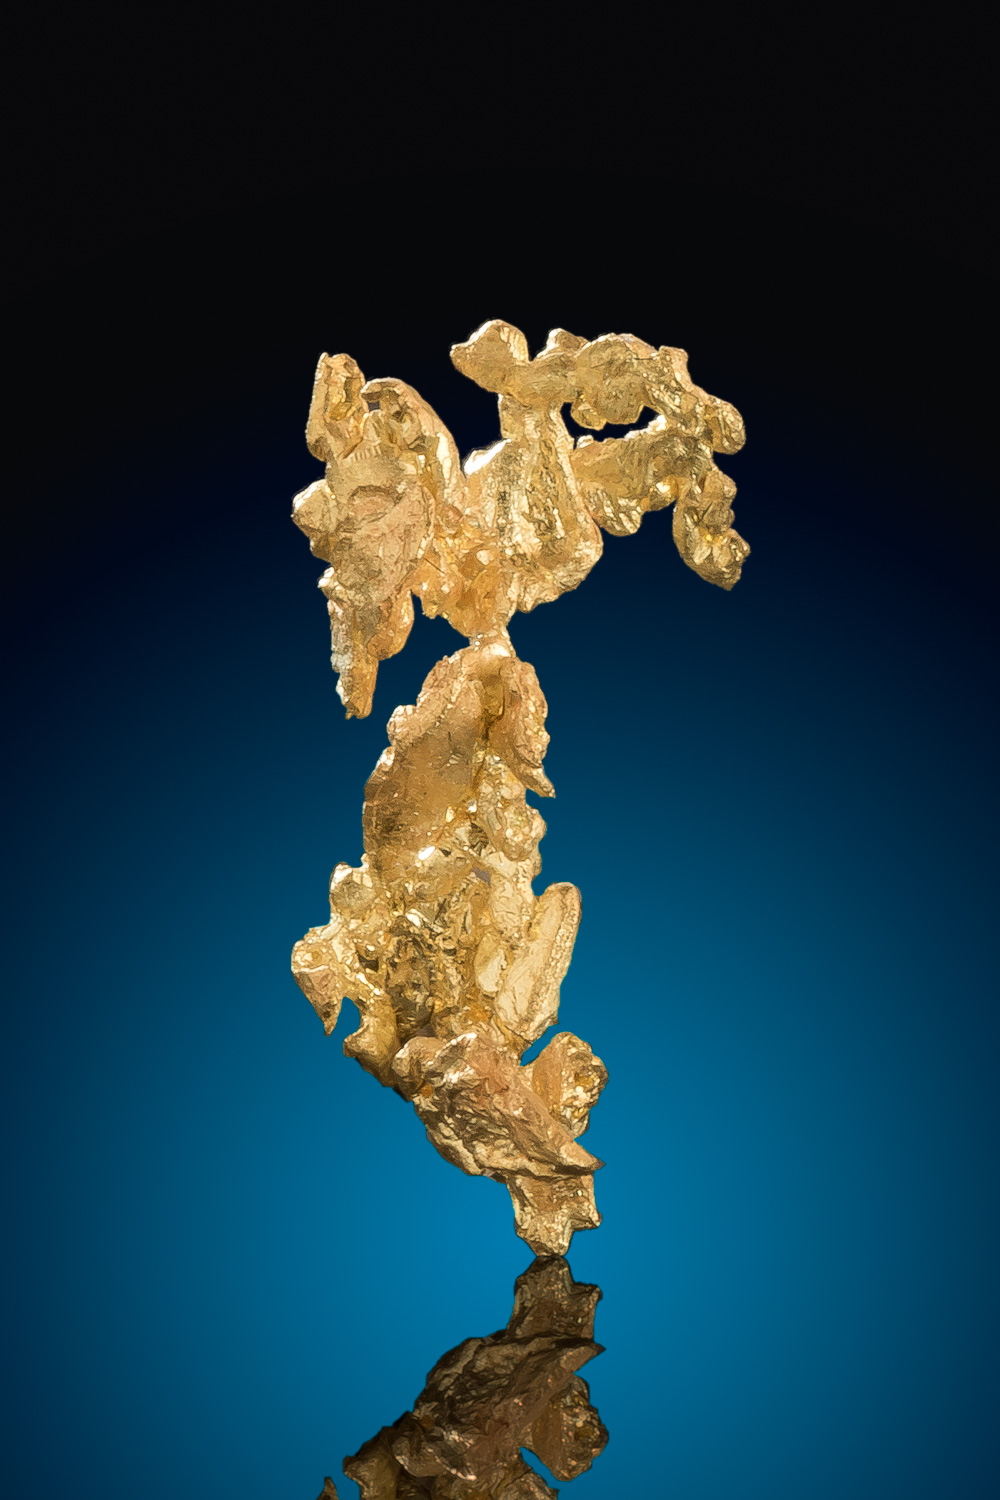 Intricate Lacy Crystalline Gold Nugget - Eagles Nest Mine